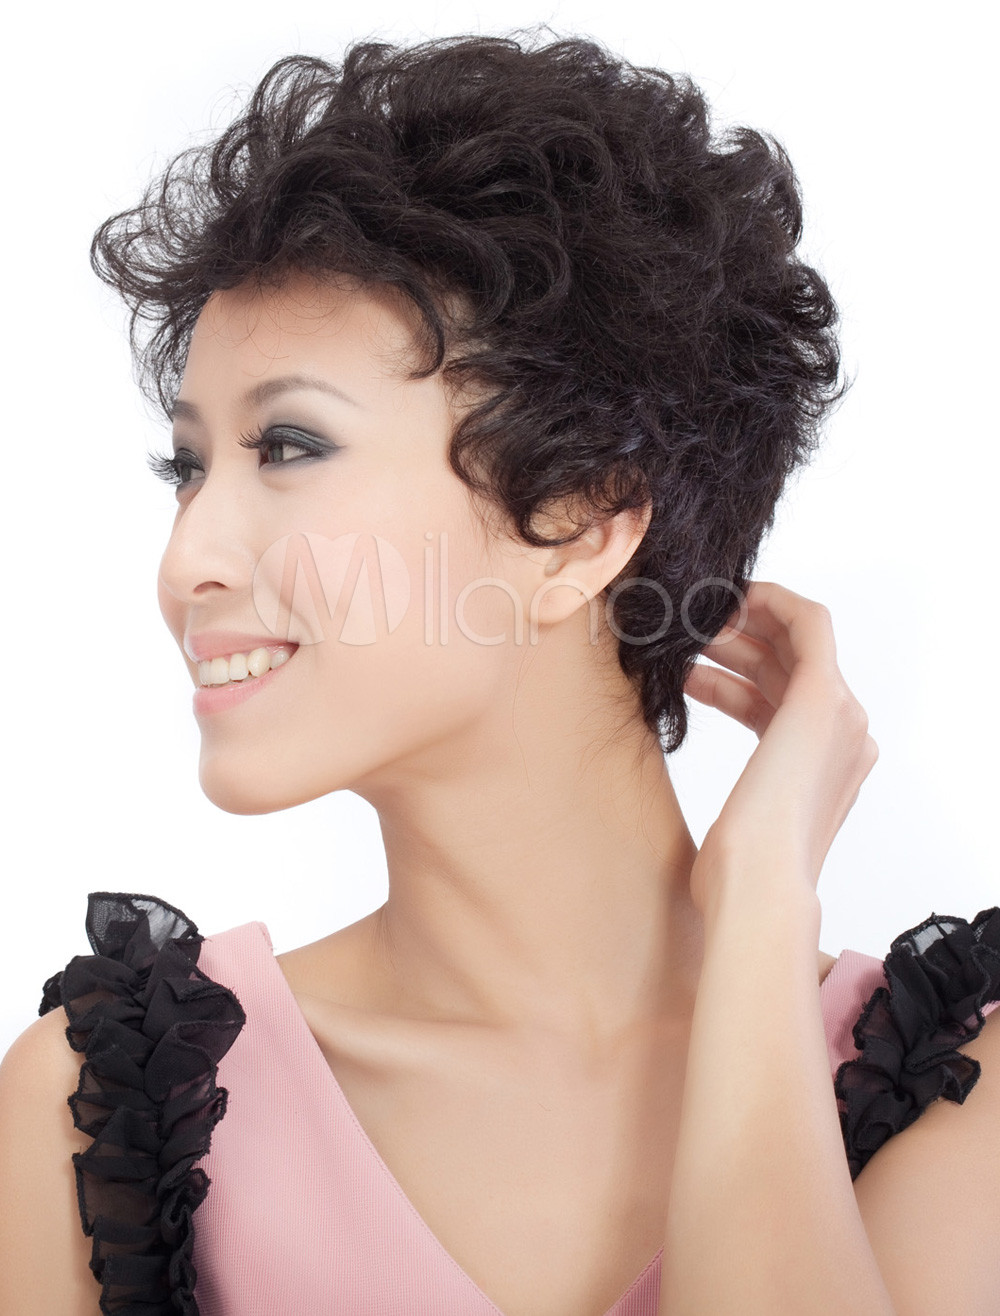 Fashion black short curly human hair wig milanoo com